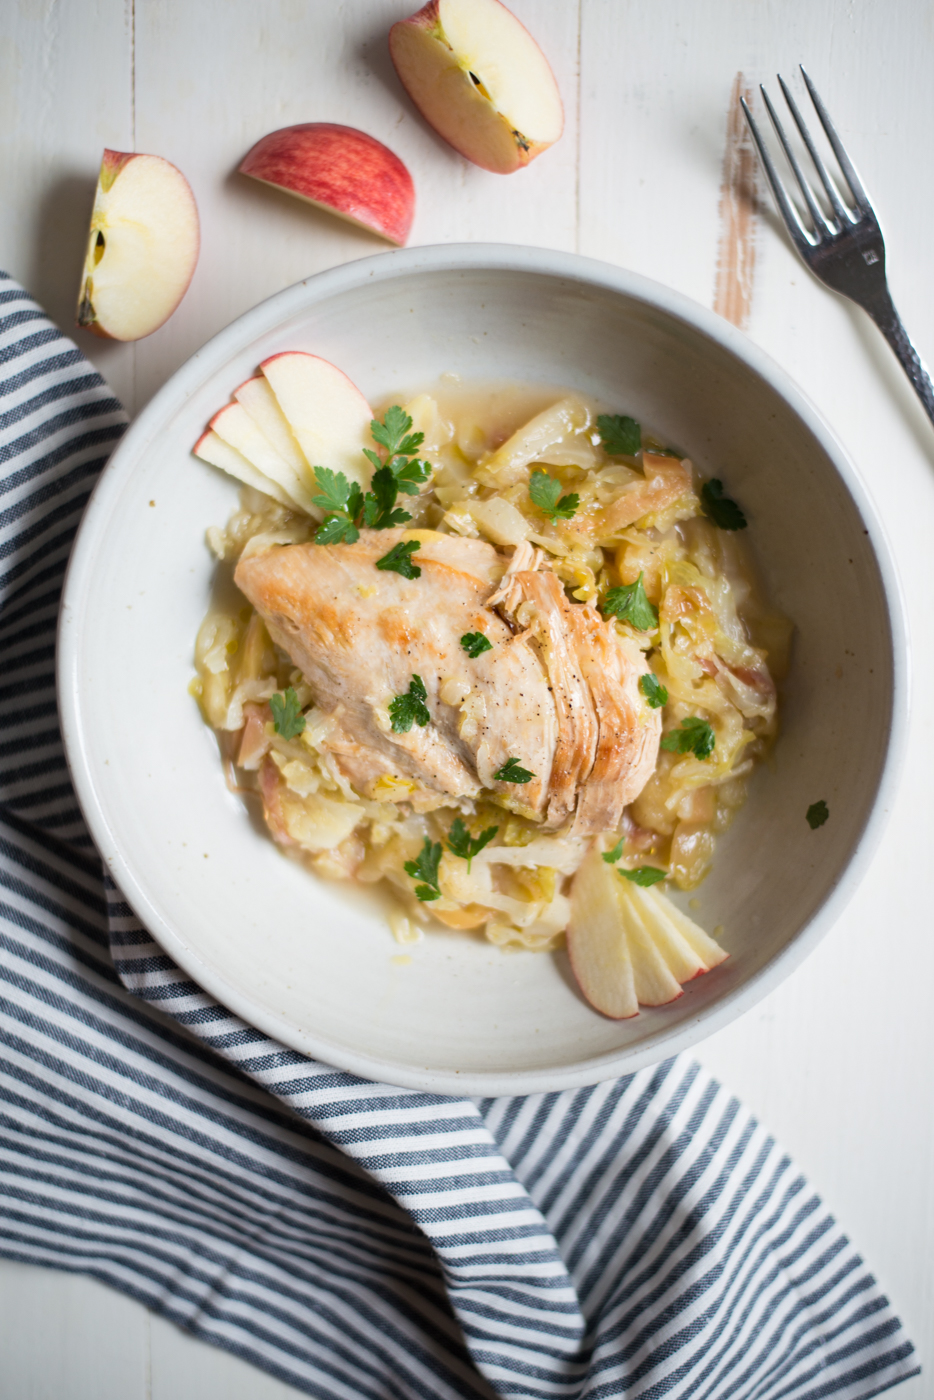 Instant Pot Chicken, Apples & Cabbage is a super simple one-pot meal that's packed with flavor, but with little prep or fuss. A gluten-free, dairy-free, paleo, whole30 recipe. #realfoodwholelife #realfoodwholeliferecipe #recipe #dinner #paleo #paleorecipe #glutenfree #grainfree #dairyfree #healthy #healthyrecipe #easyrecipe #quickrecipe #instantpot #whole30 #whole30recipe #chicken #chickenrecipe #chickeninstantpot